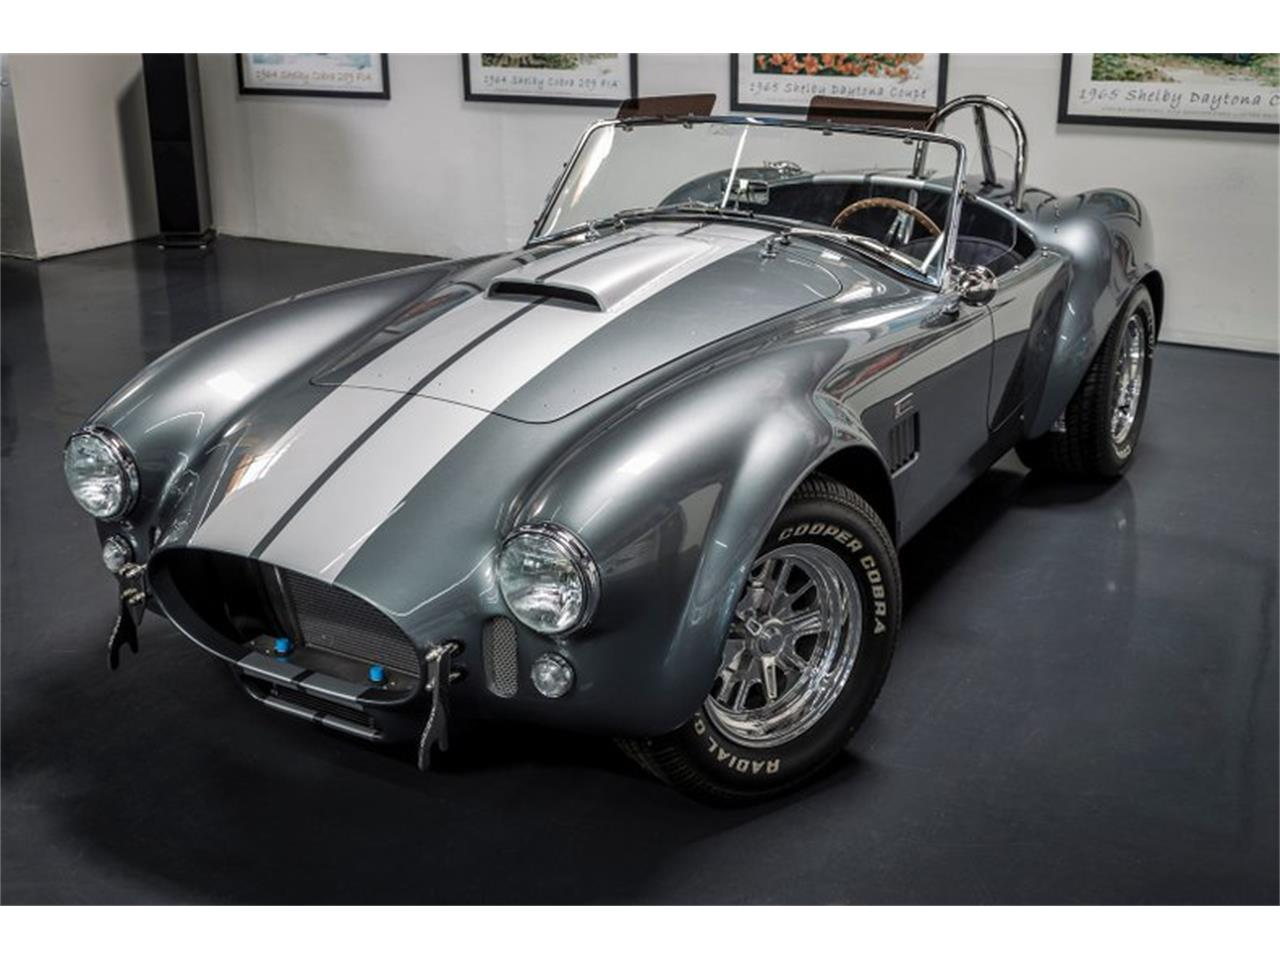 1900 Superformance MKIII for sale in Irvine, CA – photo 7